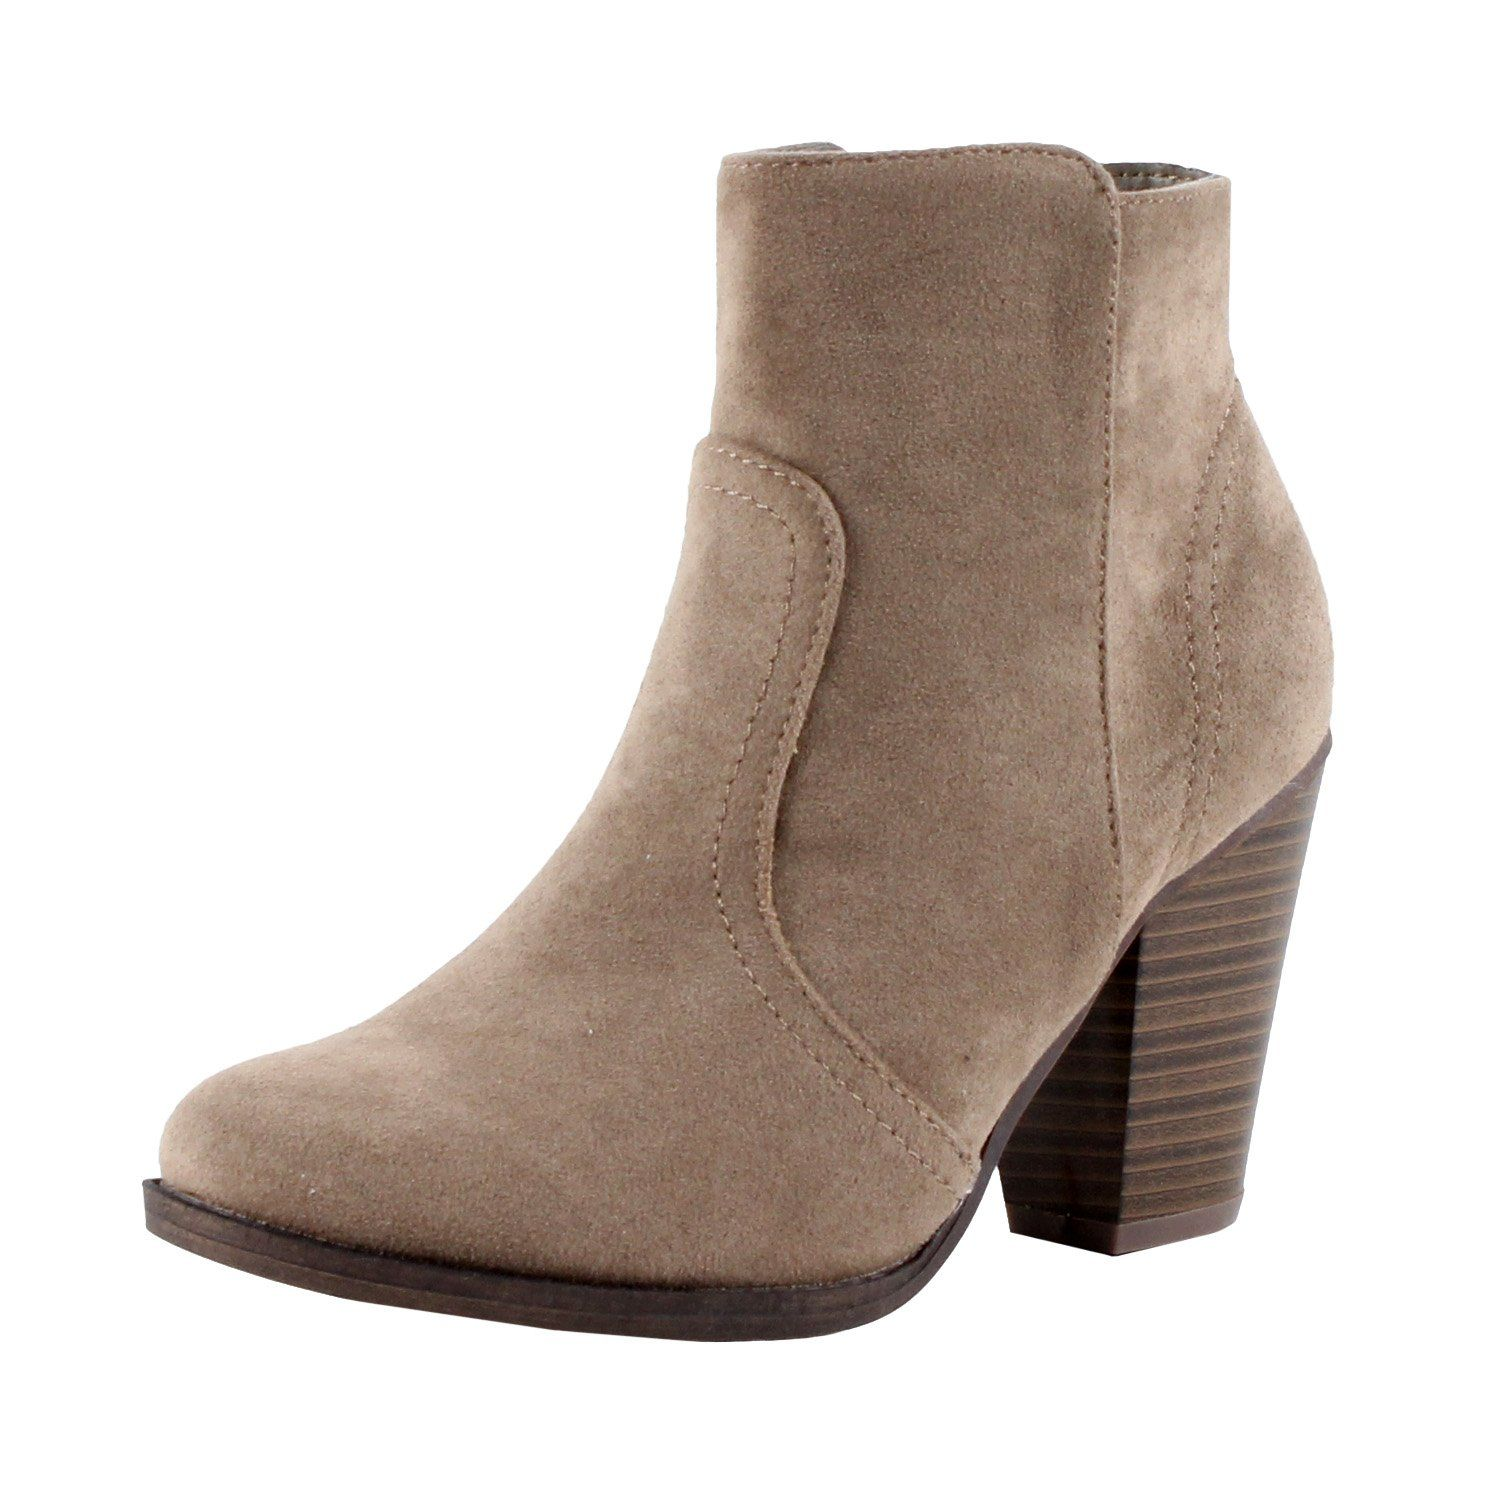 d38540591286b Breckelles Women's HEATHER-34 Faux Suede Chunky Heel Ankle Booties Beige  Suede 6.5. Synthetic. Imported. Heel Height~2 / Platform Height~0.25 /  Shaft ...